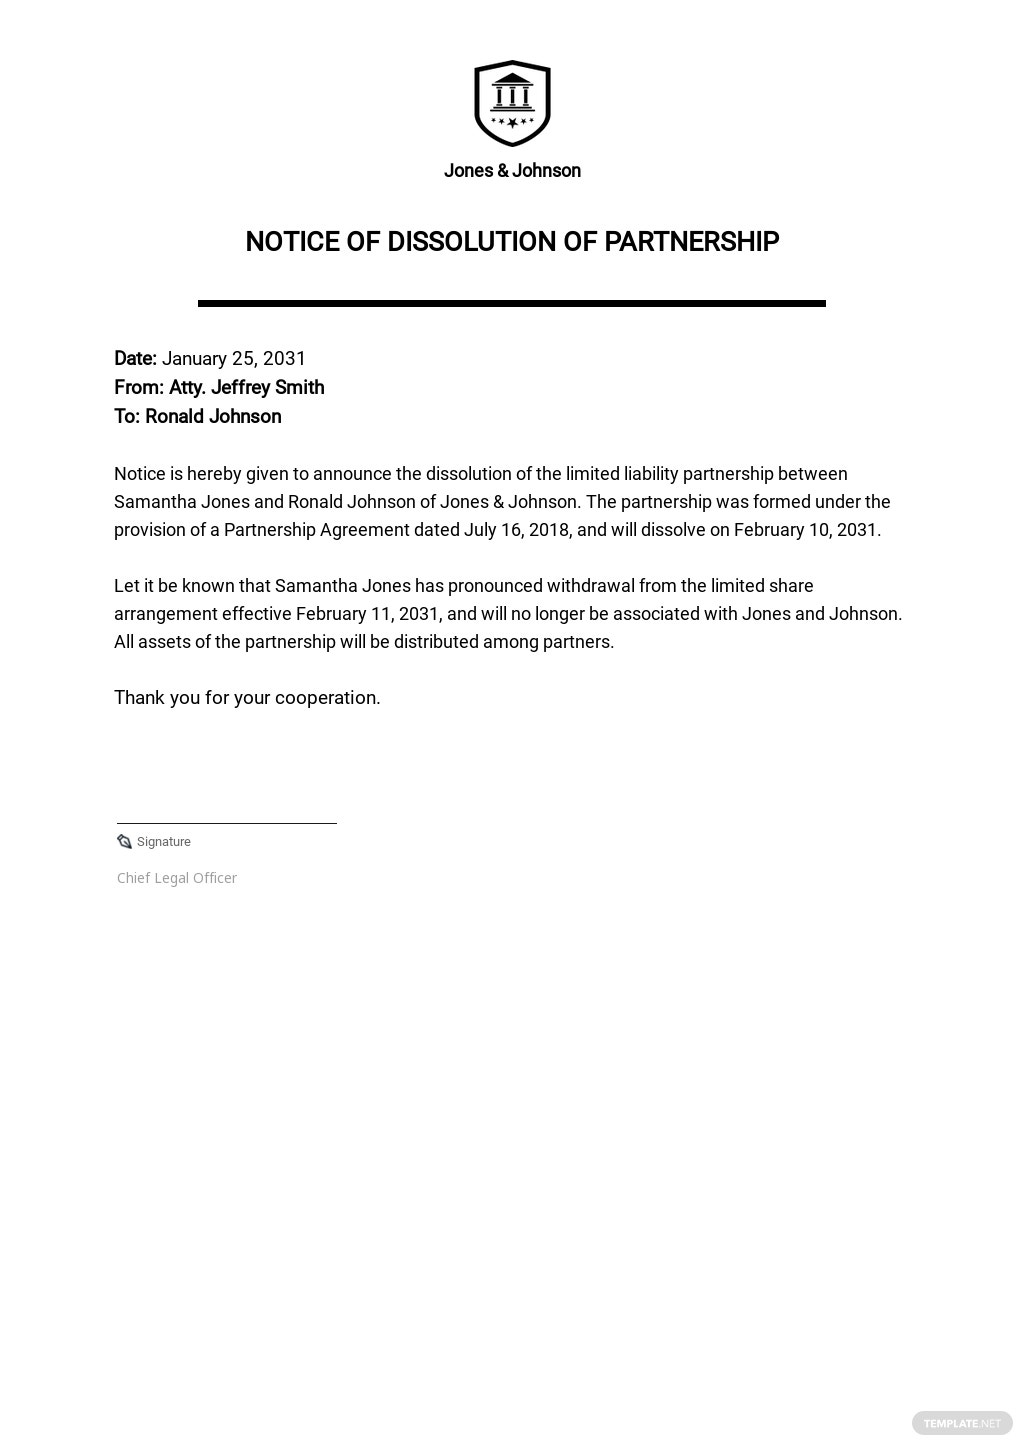 Notice of Dissolution Partnership Template.jpe